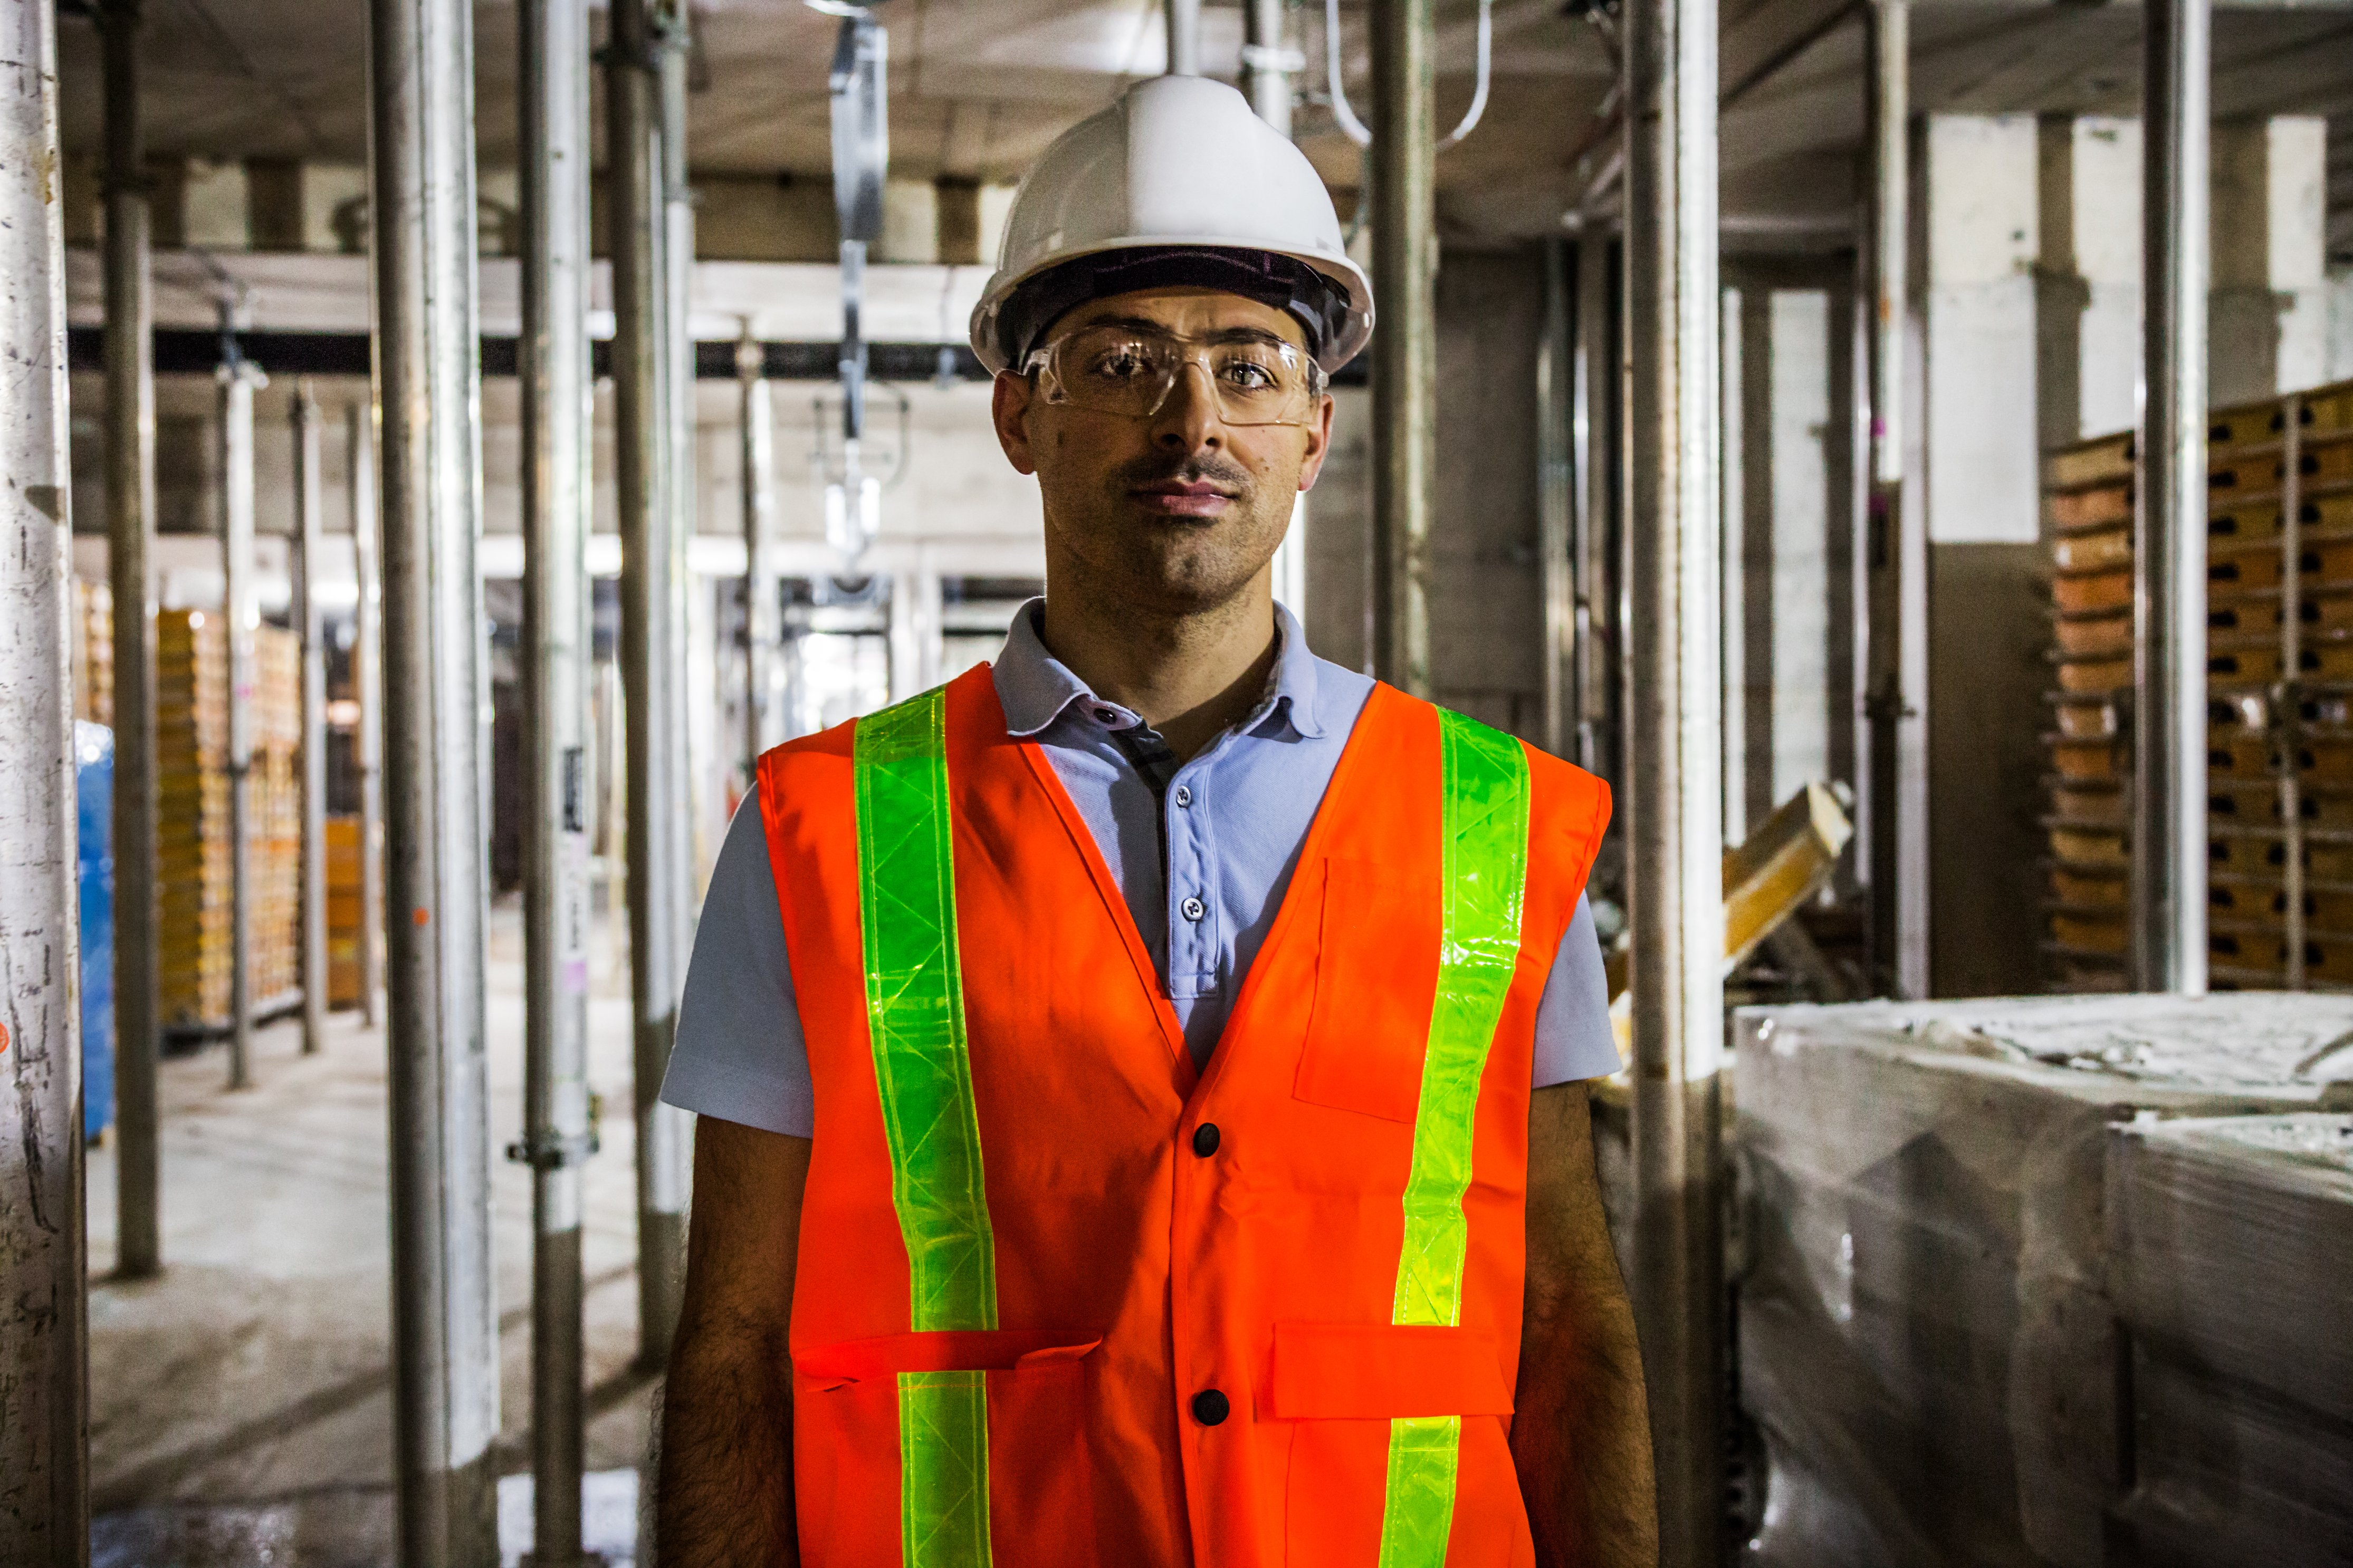 Construction worker safety gear